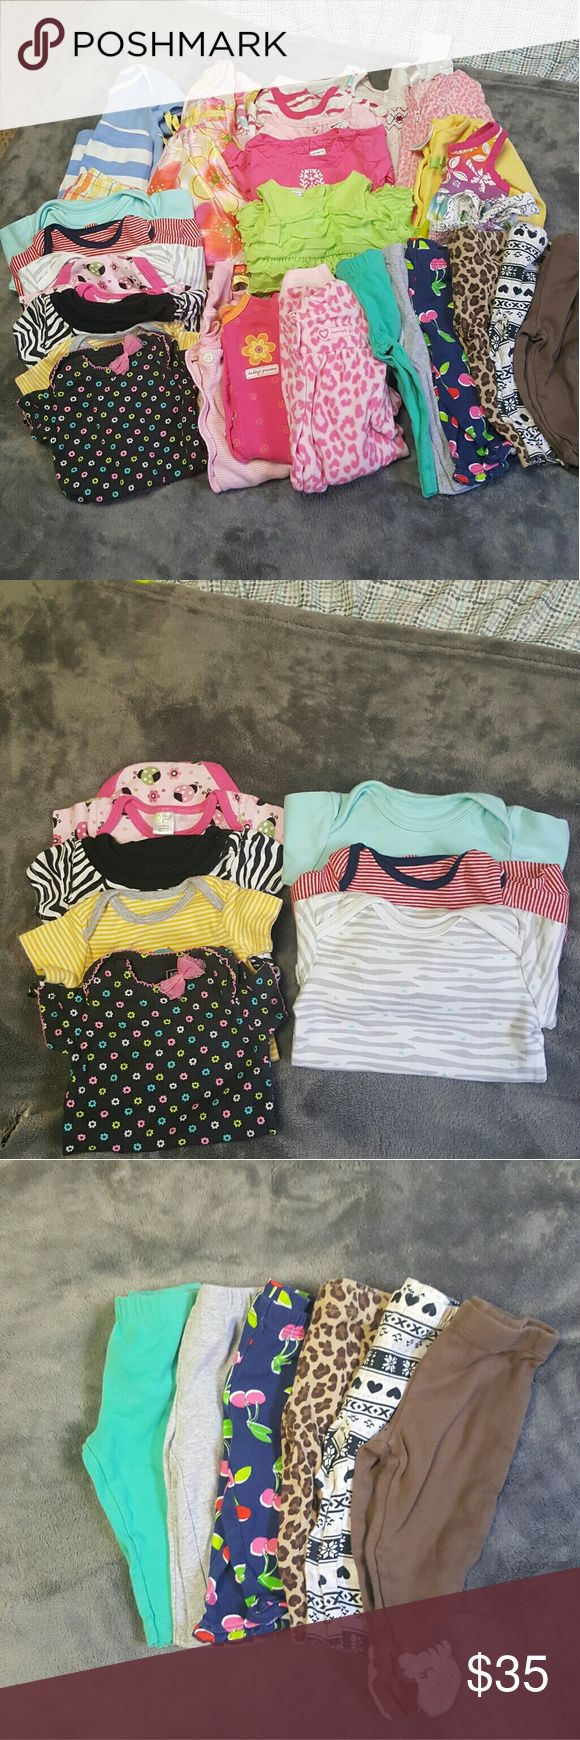 0-3 Months Baby Girls Lot Good condition. 30 Pieces!  Most are mix and match. Some are 0-3 months and others are 3 month's.  4 Short sleeve Onsies and 3 Long Sleeve Onsies(Pic 2) 6 Pants (Pic 3) 3 Full Onsies (Pic 4) 10 Tops (Pic 5) 1 Outfits, dress and skirt (Pic 6) Many different brands. Carter's One Pieces Bodysuits